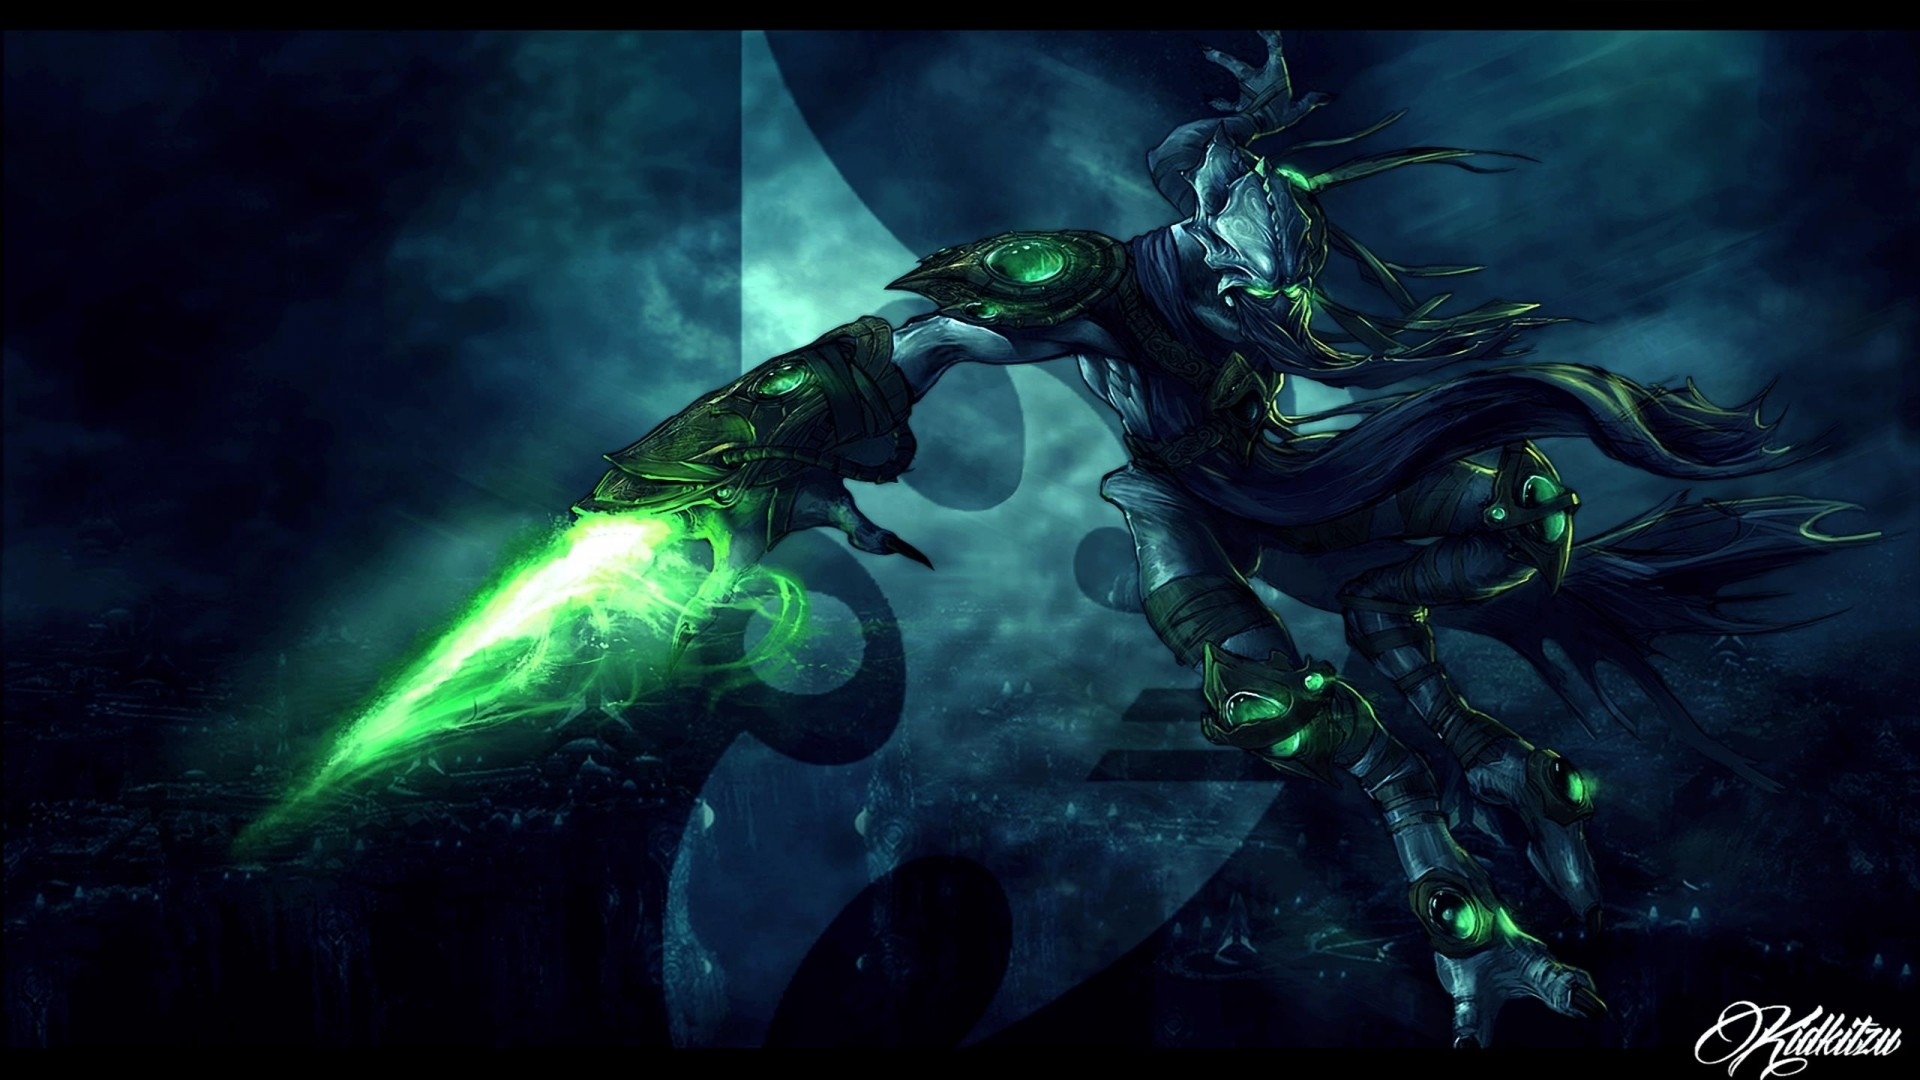 Res: 1920x1080, thrall warchief of the horde tyrael archangel of justice diablo